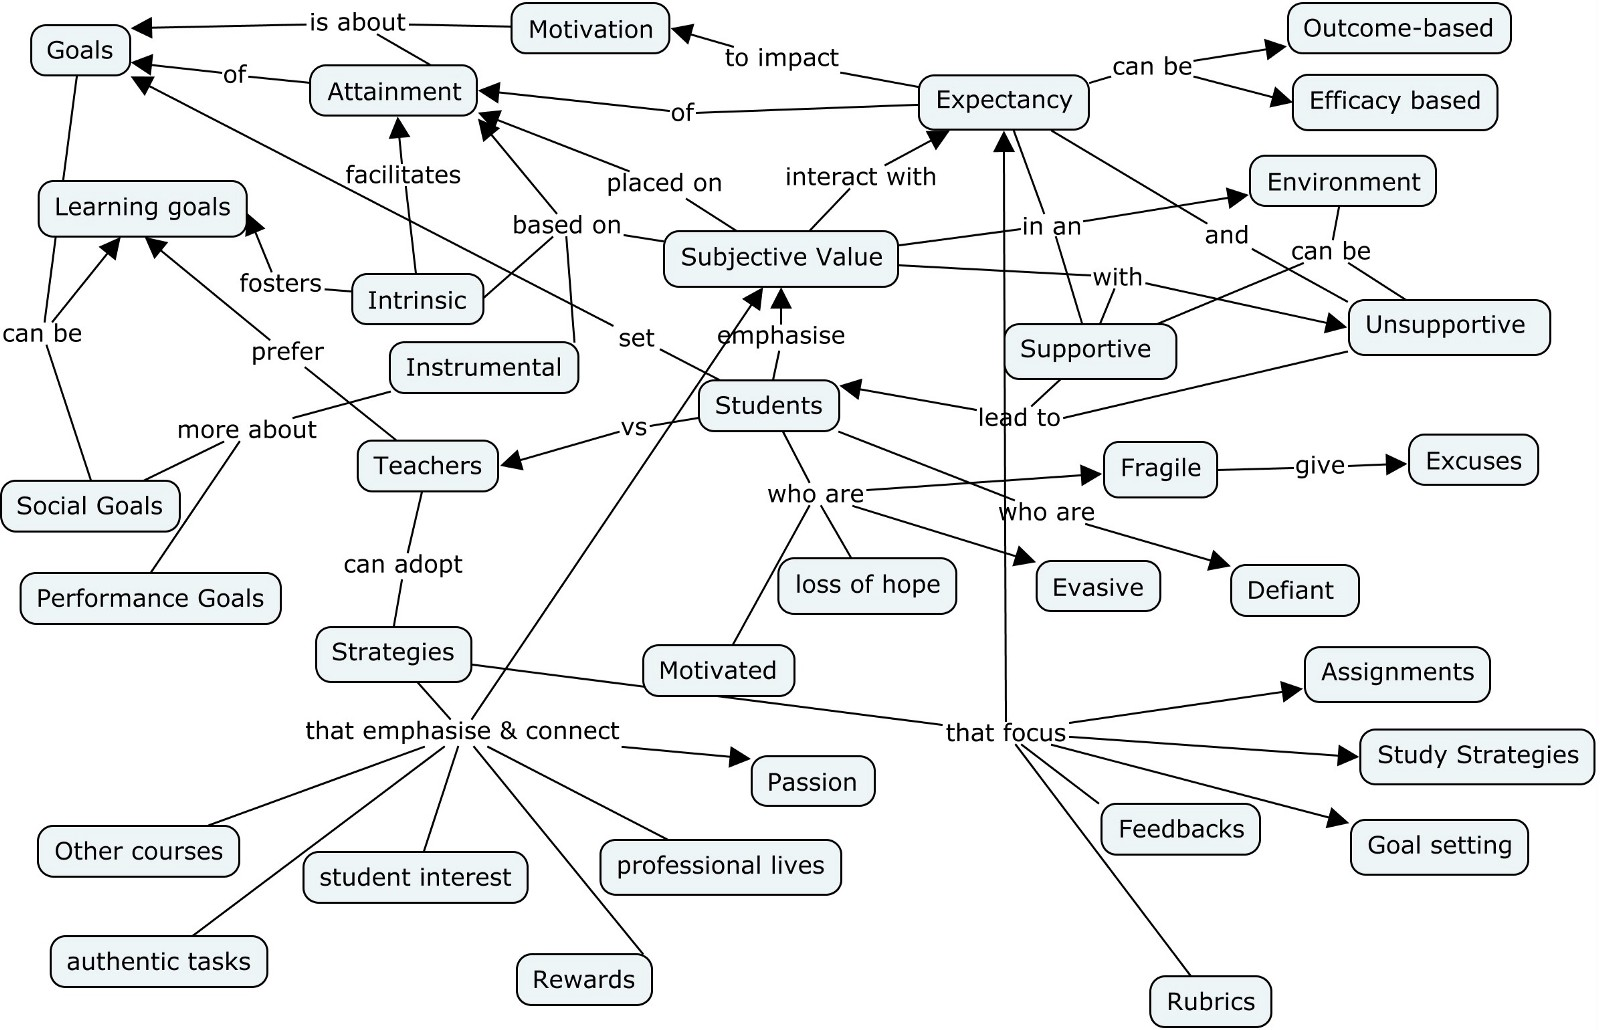 Concept Map Com.How To Draw Concept Maps And Mind Maps For Sensemaking